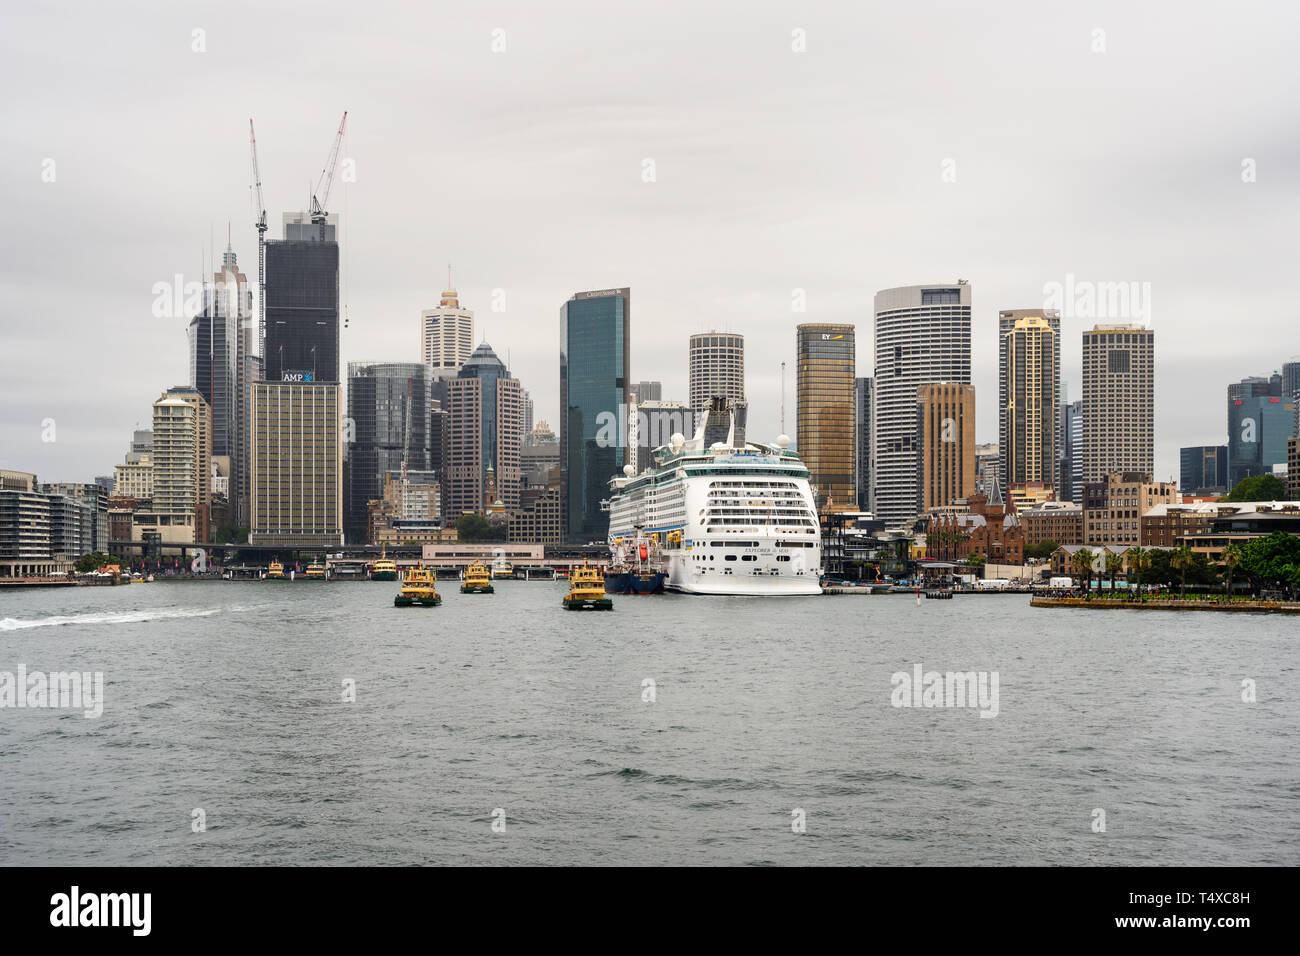 Royal Caribbean cruise ship 'Explorer of the Seas' berthed at the Overseas Passenger Terminal, Sydney, Australia.  Seen from Sydney Harbour. - Stock Image